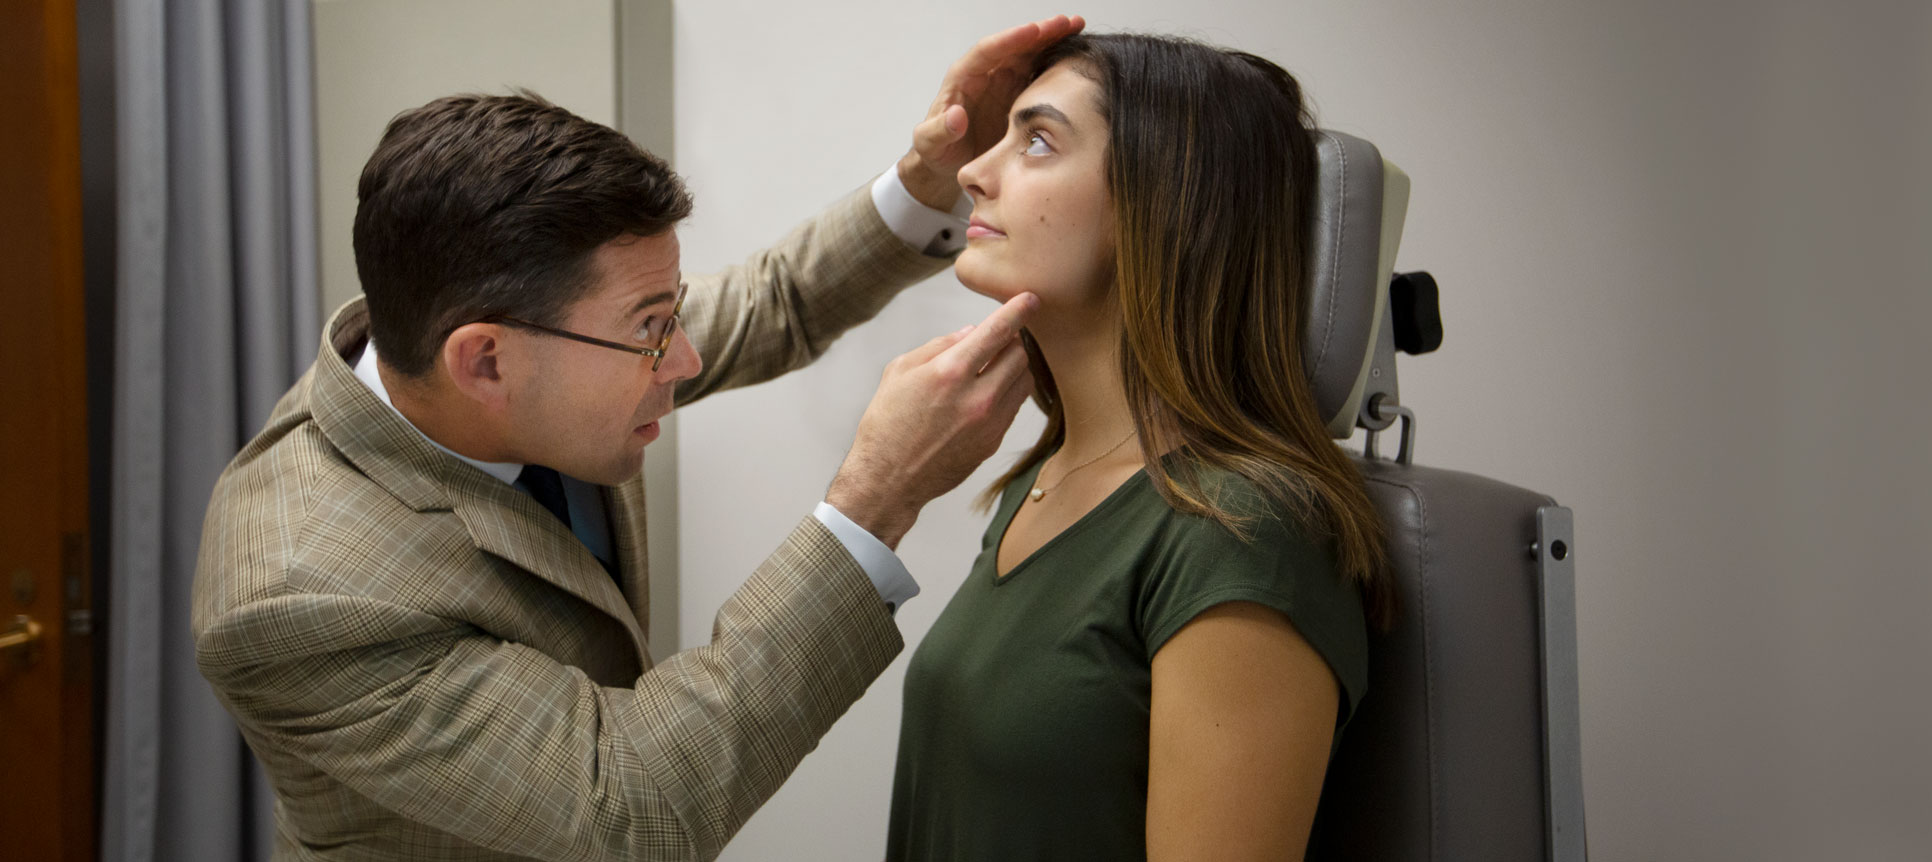 A doctor looks at a patient's nose